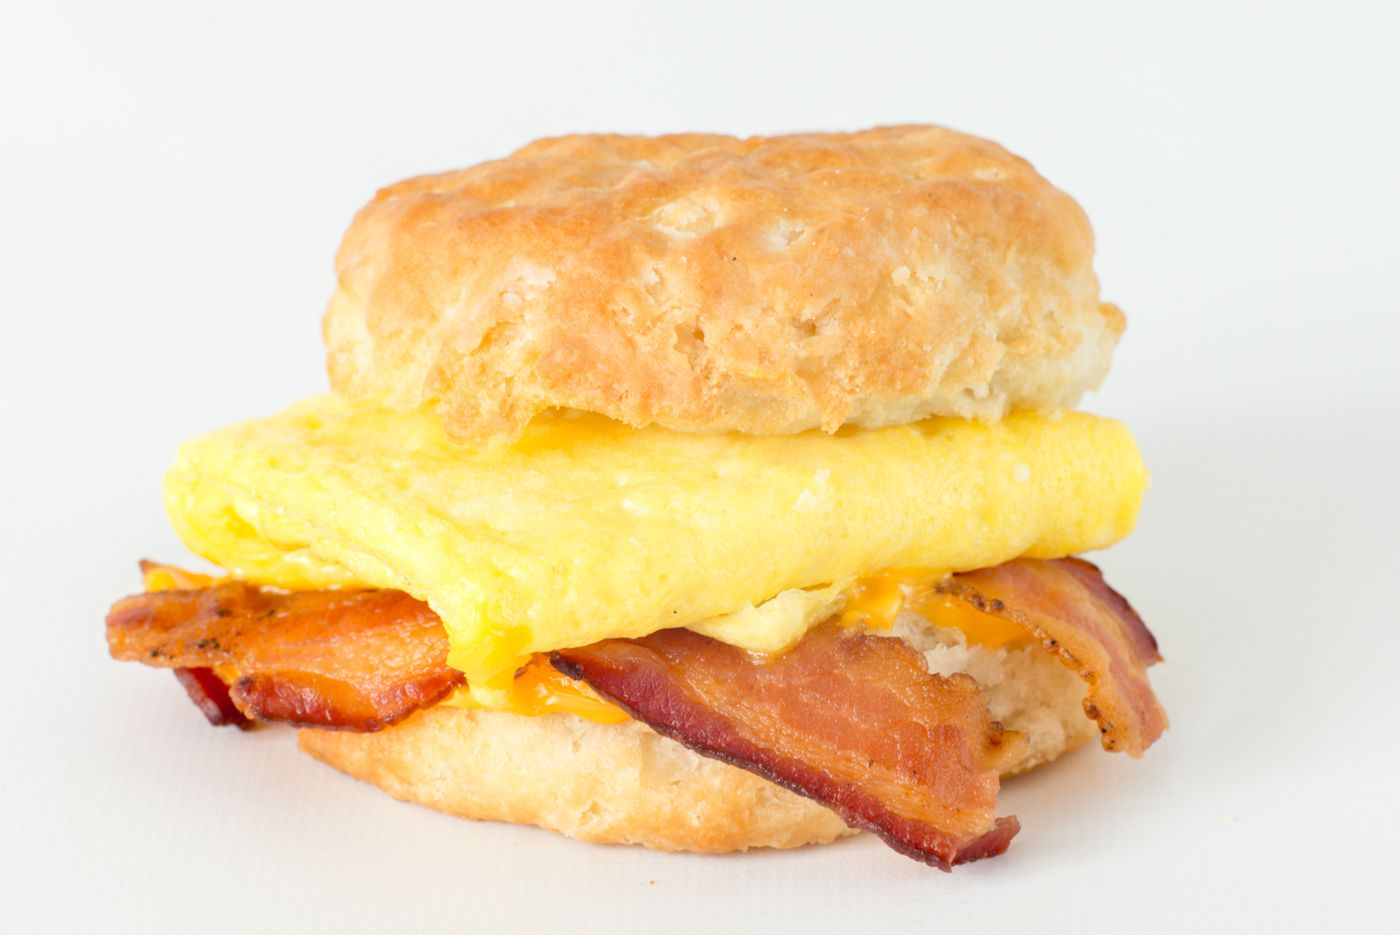 Study: McDonald's All-Day Breakfast Is Bringing in New Customers